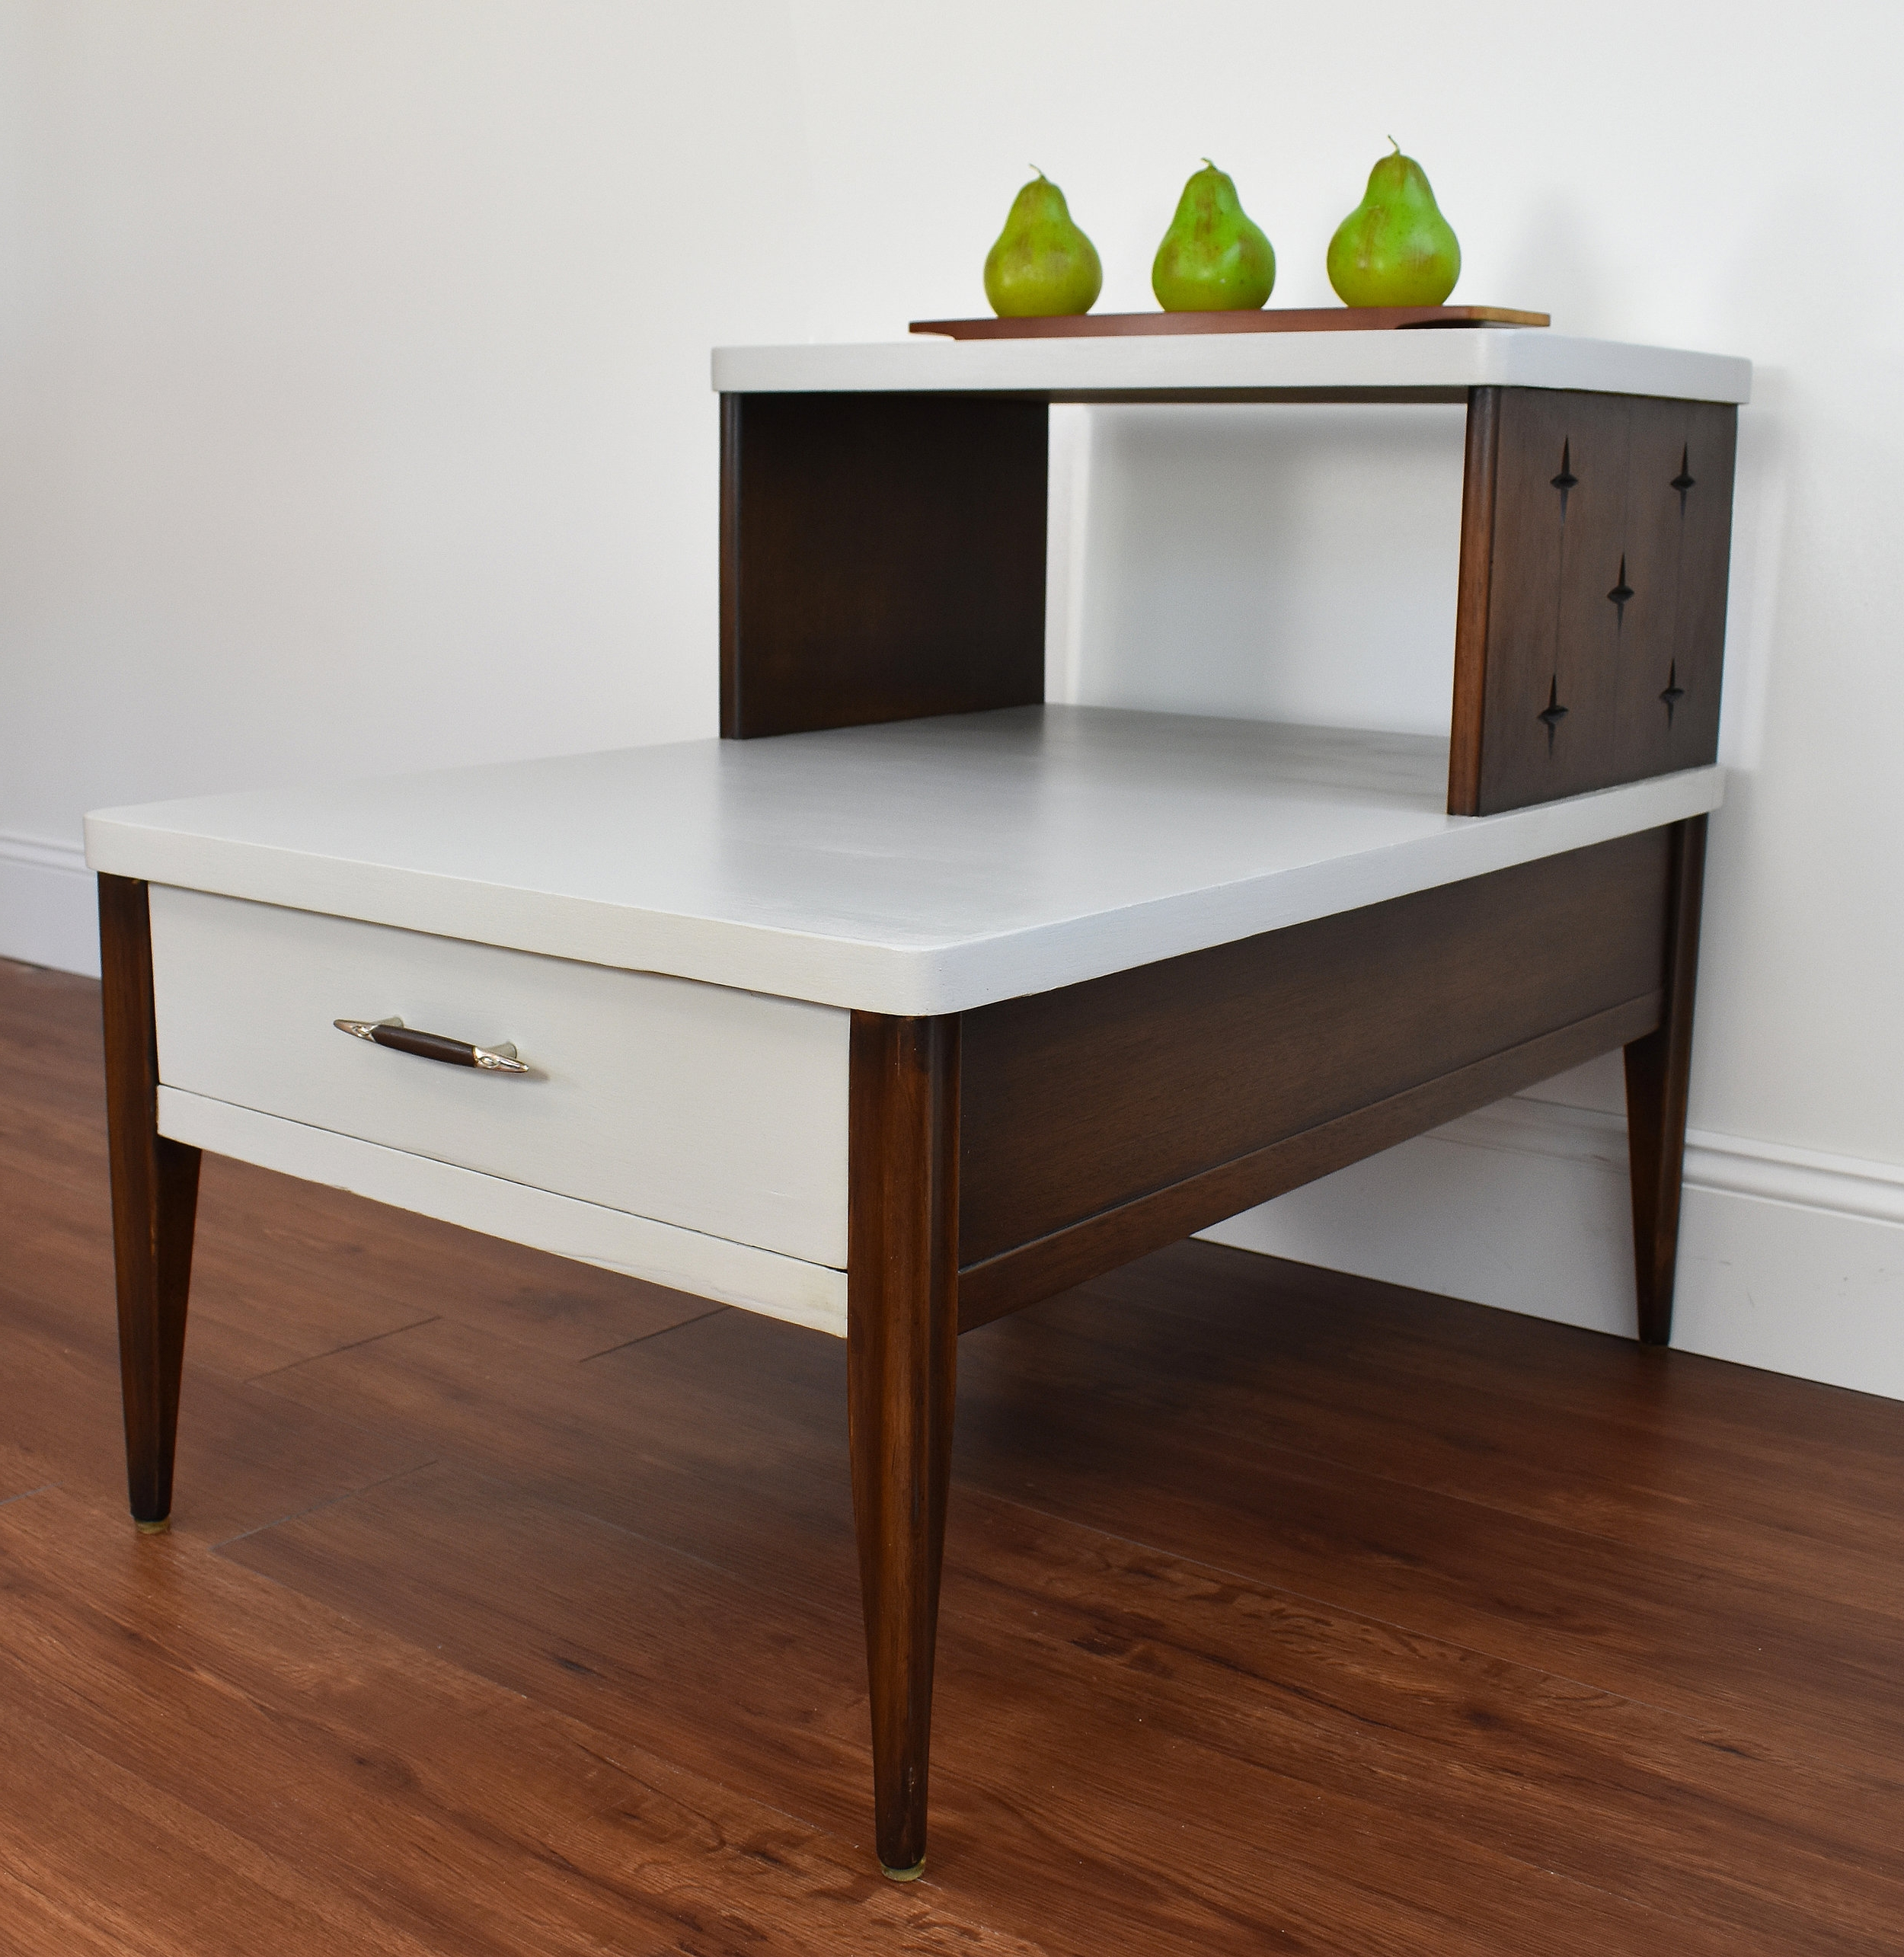 """""""After"""" view of Broyhill """"Saga"""" end table"""